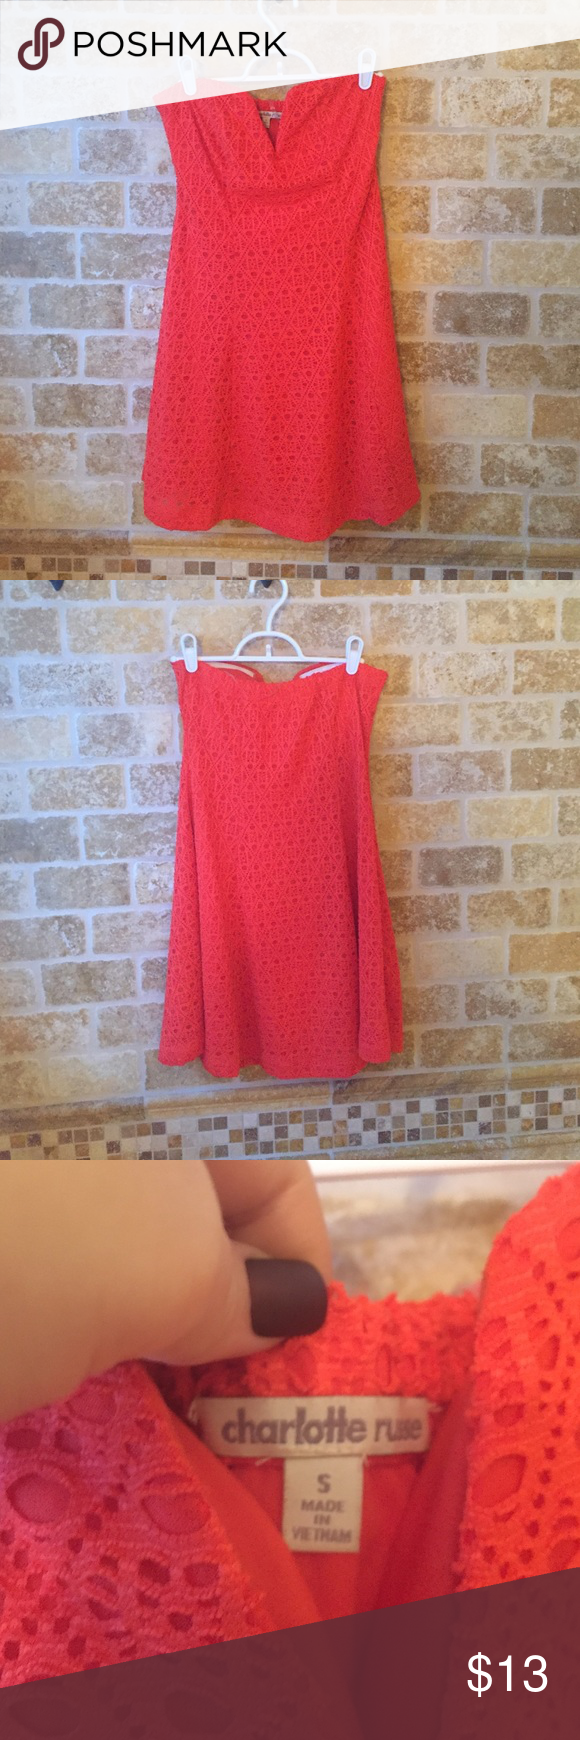 Orange Eyelet Strapless Dress Bright red/orange Eyelet strapless dress from Charlotte Russe! Worn once. Very cute with a big necklace and wedges in the summer. Neck line is a plunge V and there is no zipper. Very stretchy, comfortable, and flattering Charlotte Russe Dresses